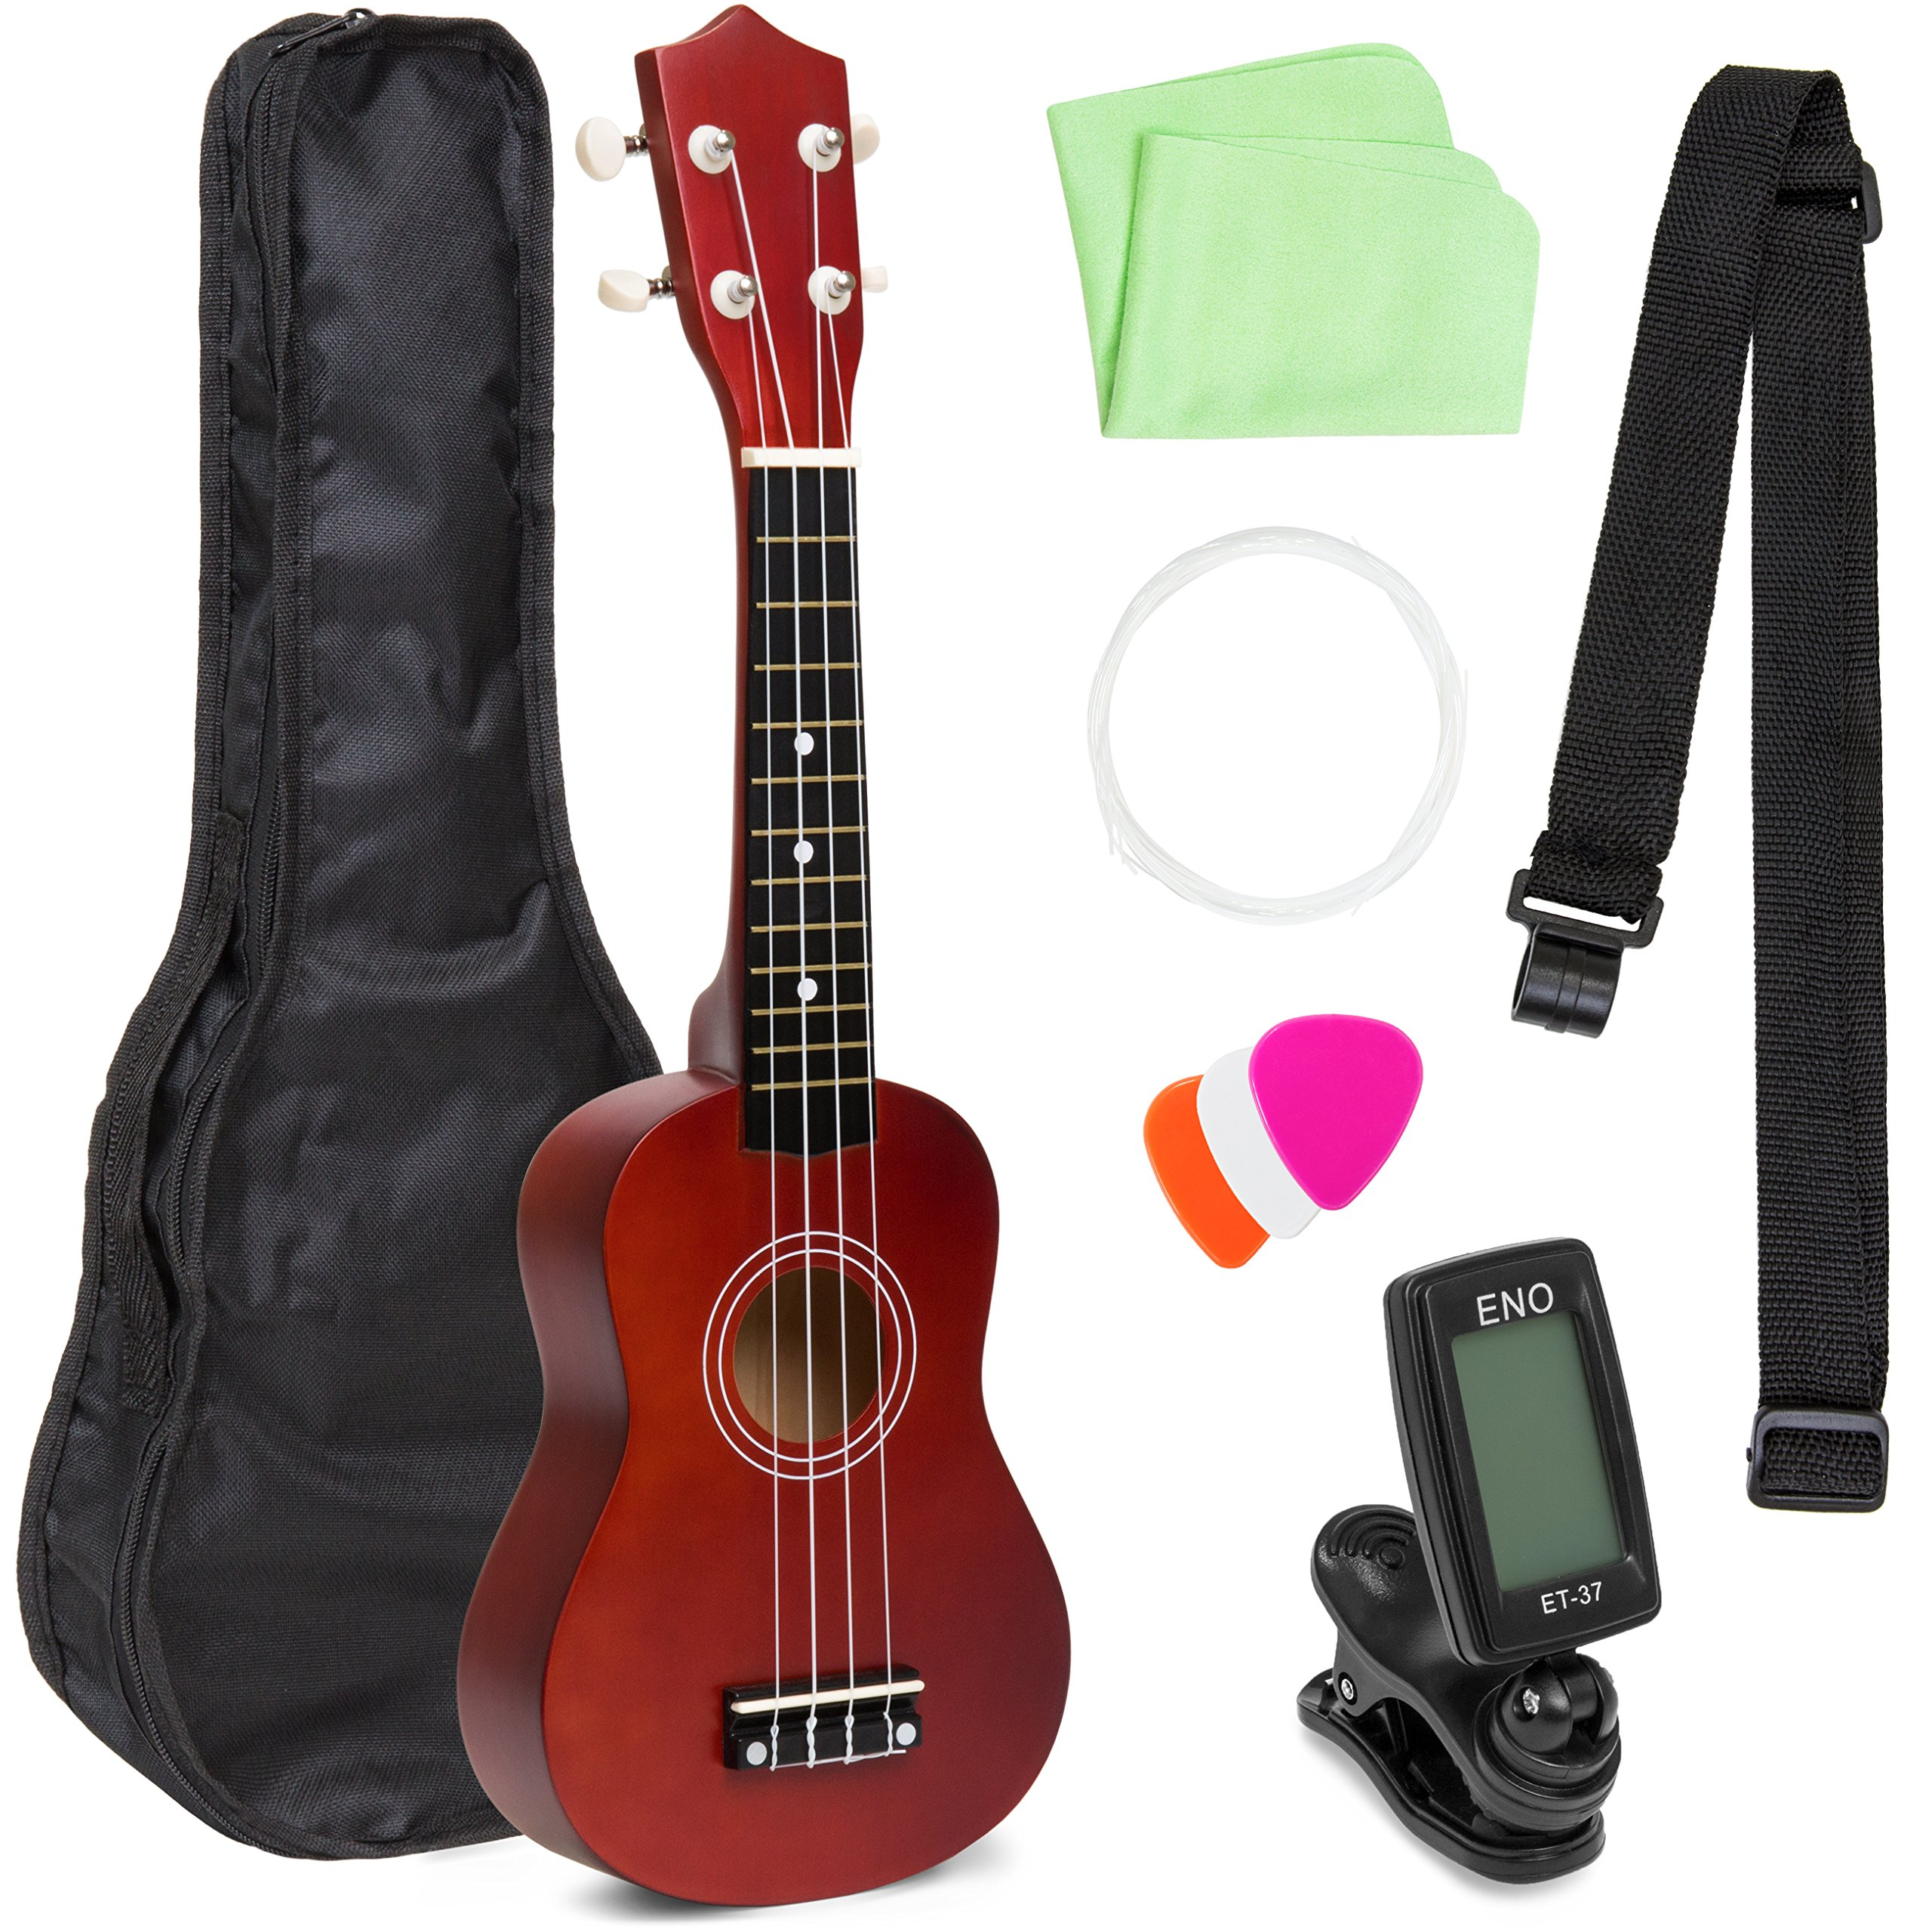 Best Choice Products 21in Beginner Basswood Ukulele Starter Kit w/Case, Strap, Clip-On Tuner, Extra String - Brown by Best Choice Products